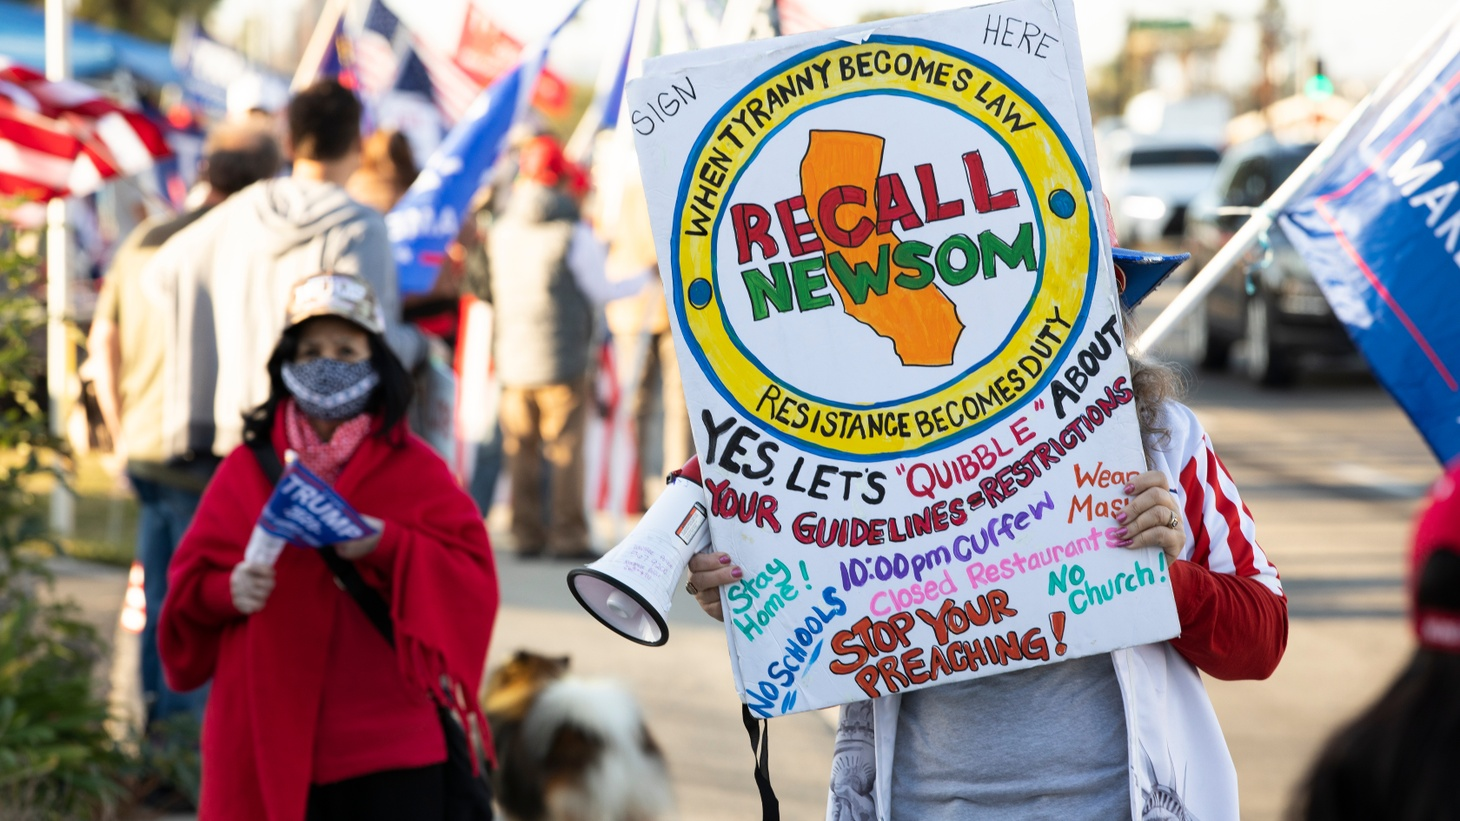 The recall was first advanced by the Republican governor Hiram Johnson in 1911, and it's been used aggressively ever since by the GOP.